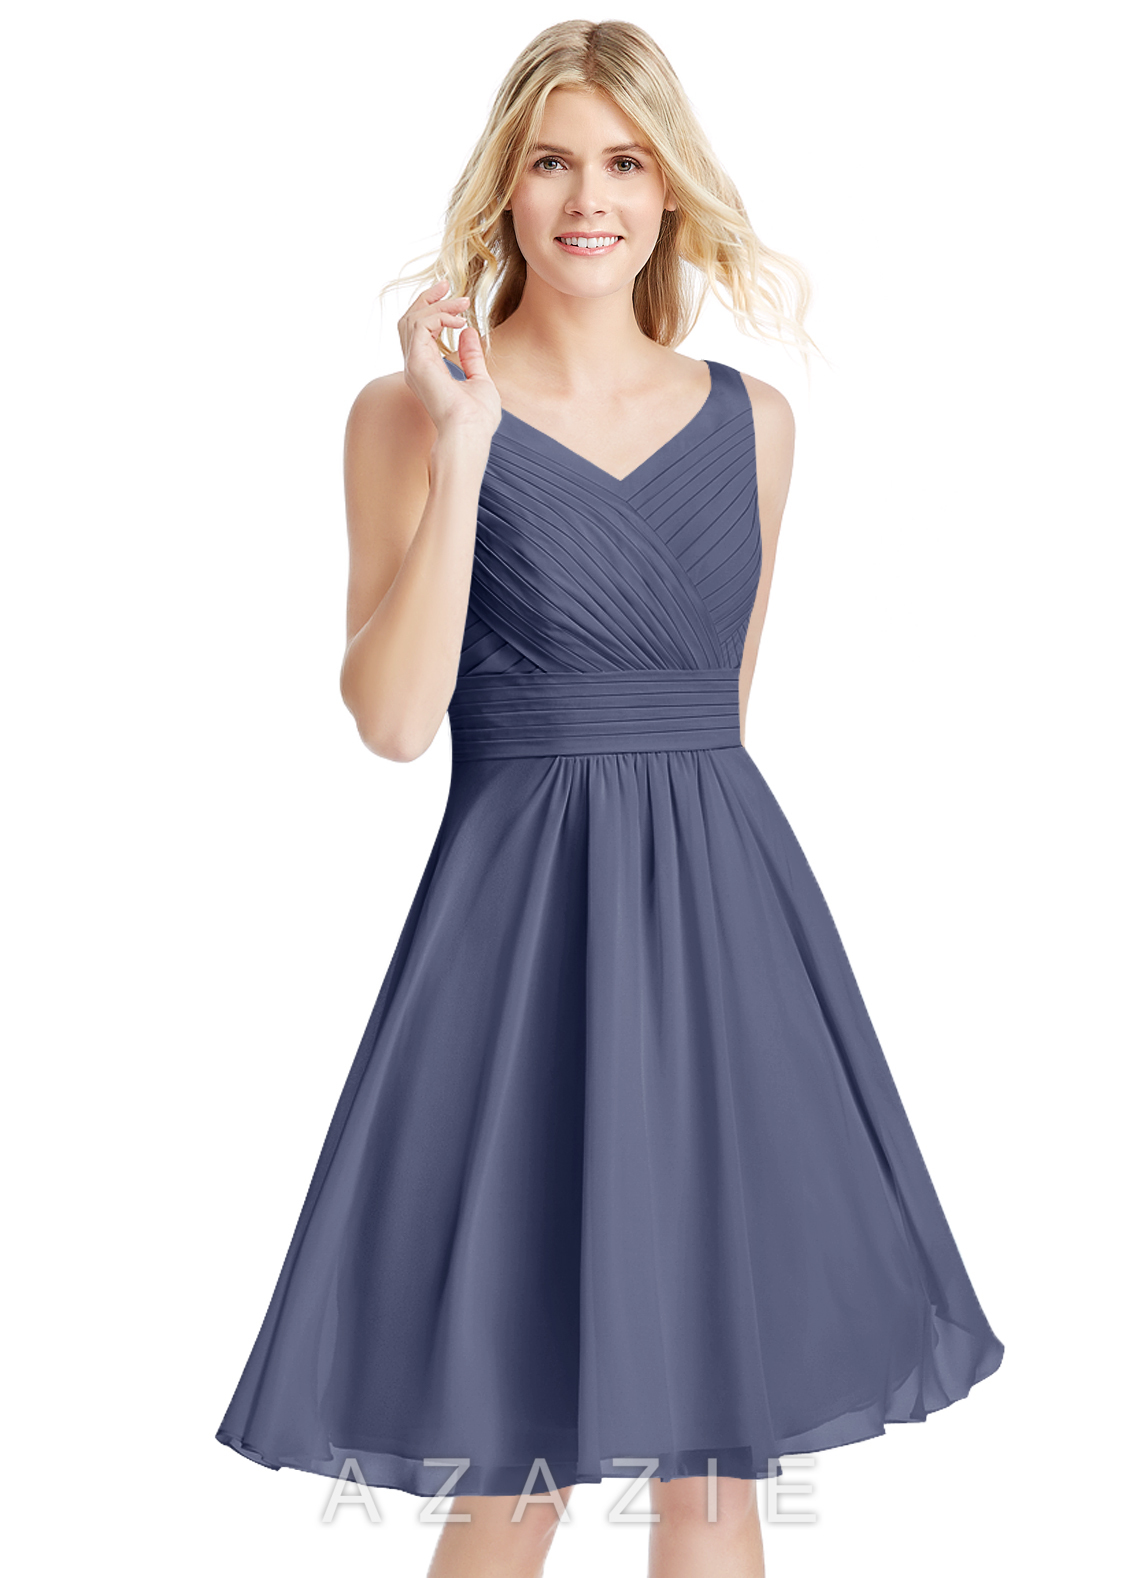 e6bb4cf88da5 Azazie Grace Bridesmaid Dress - Stormy